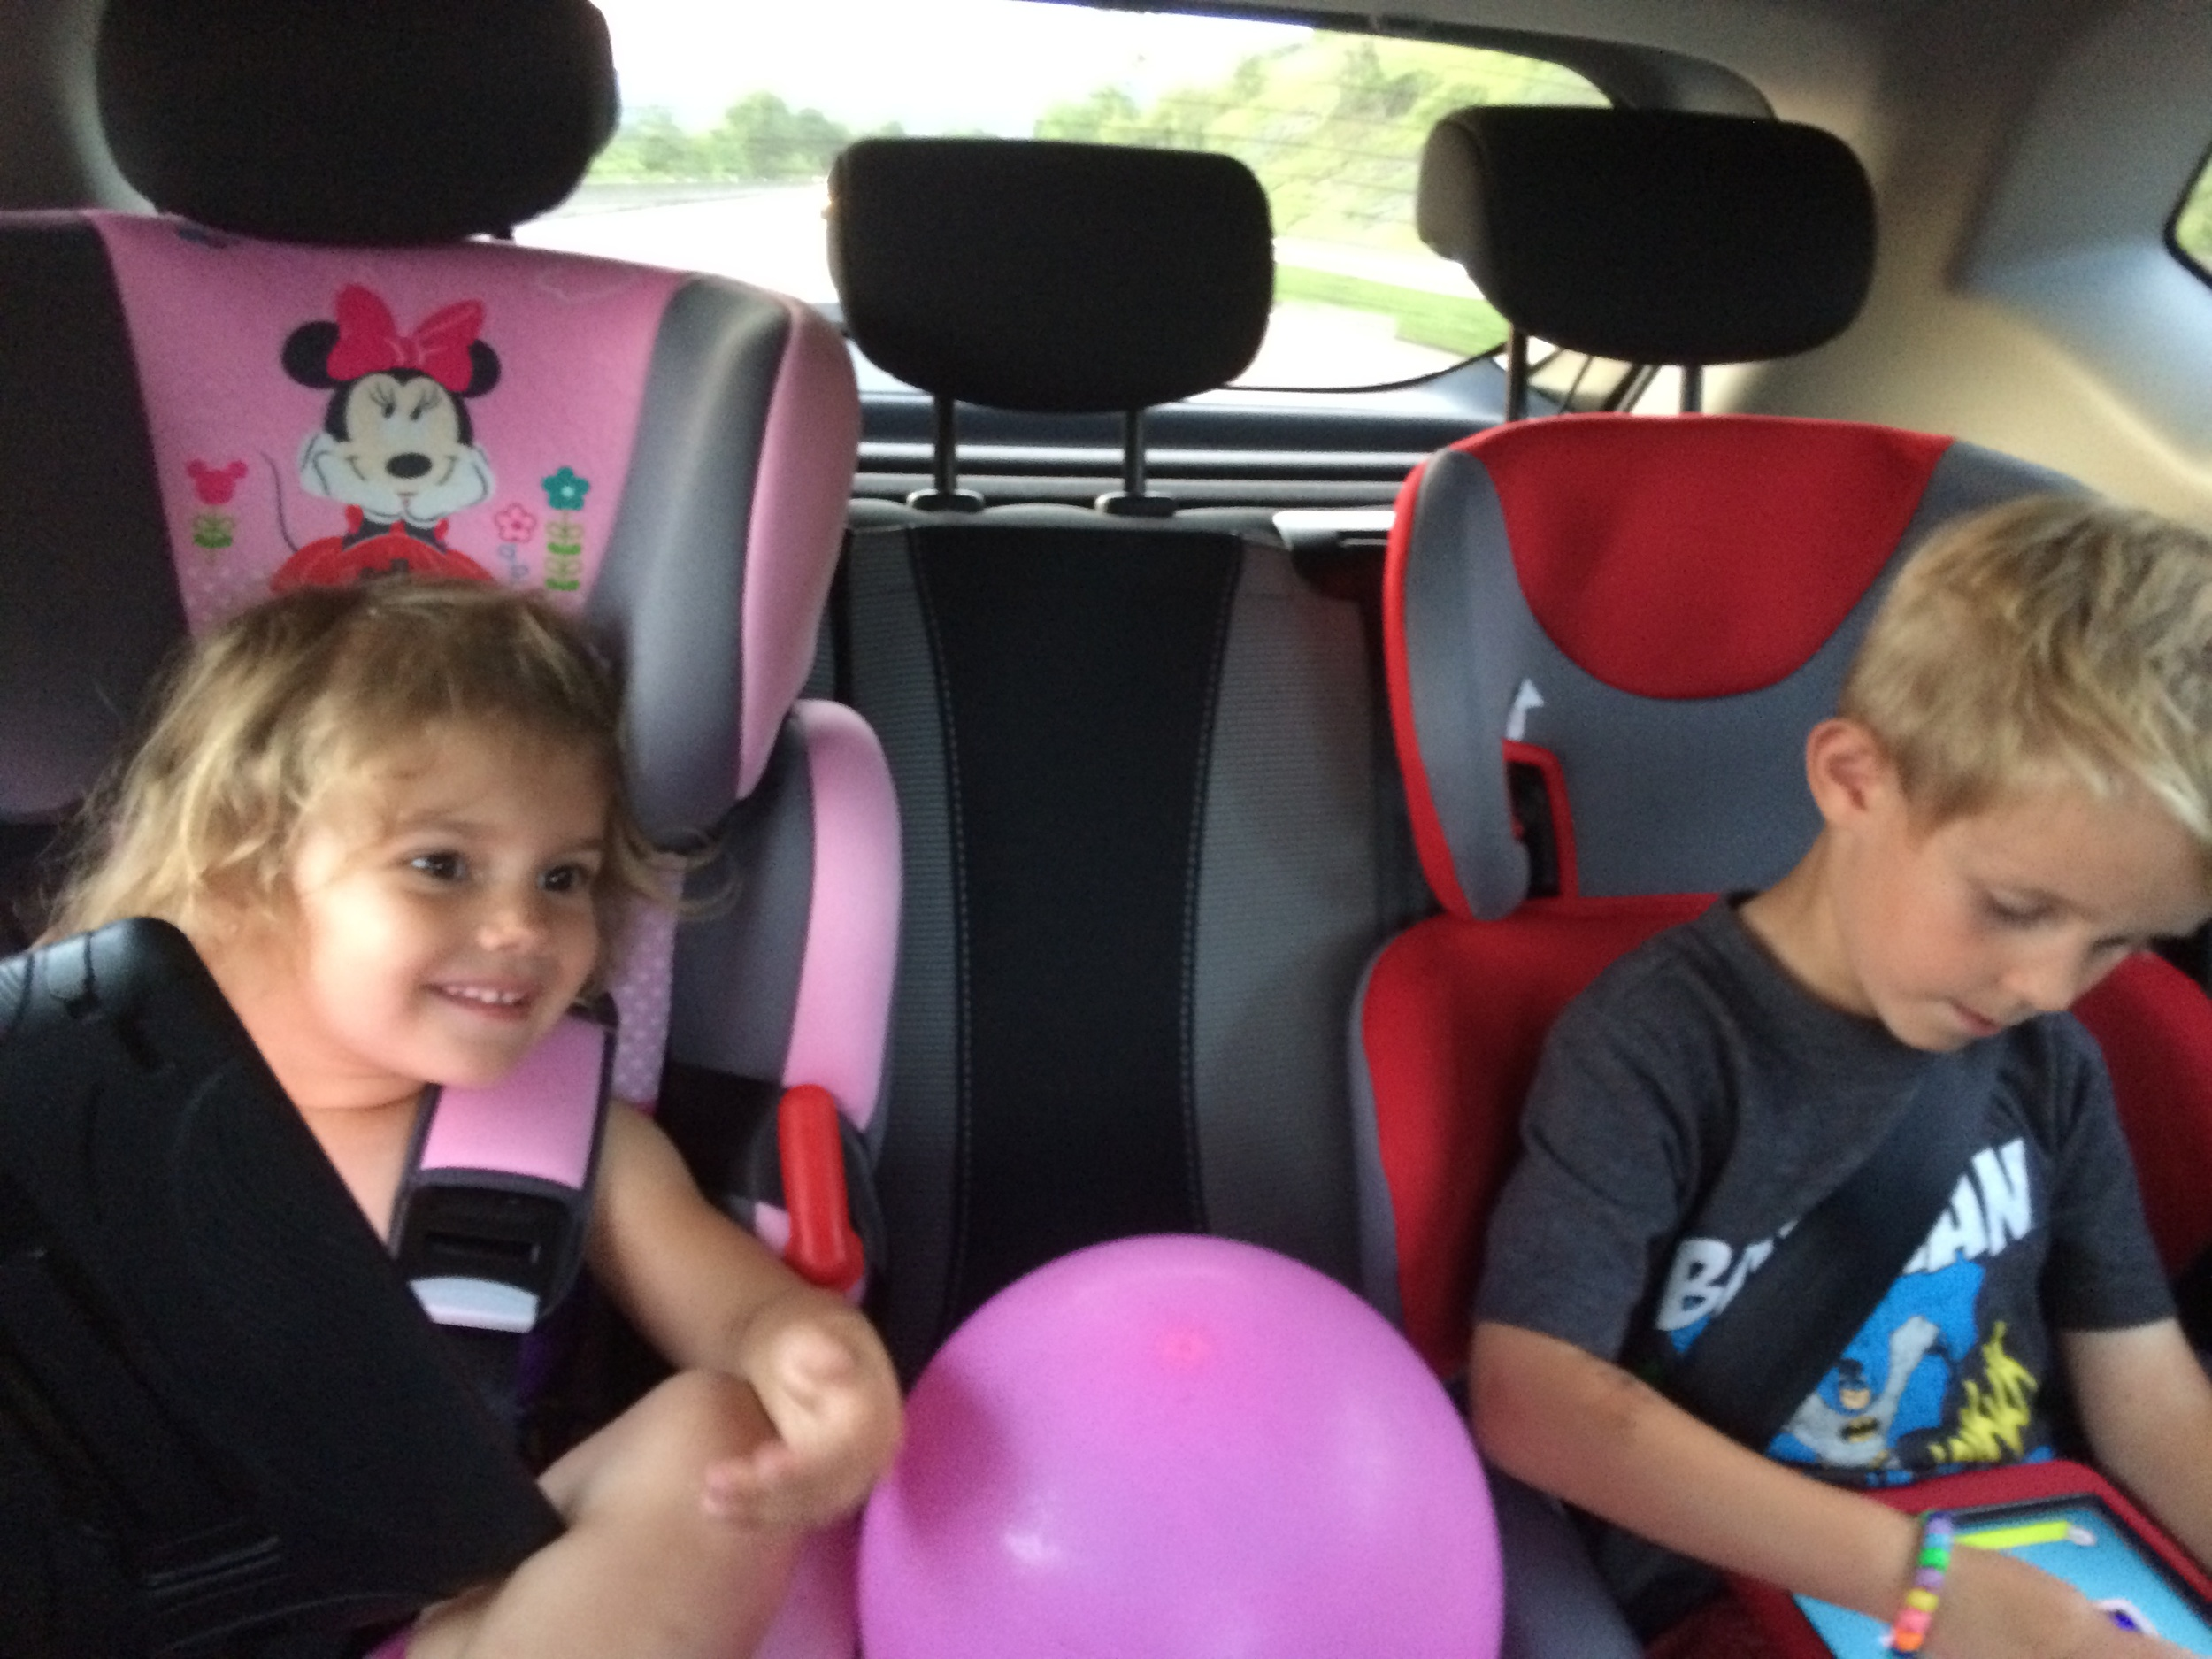 Kids strapped into their new car seats